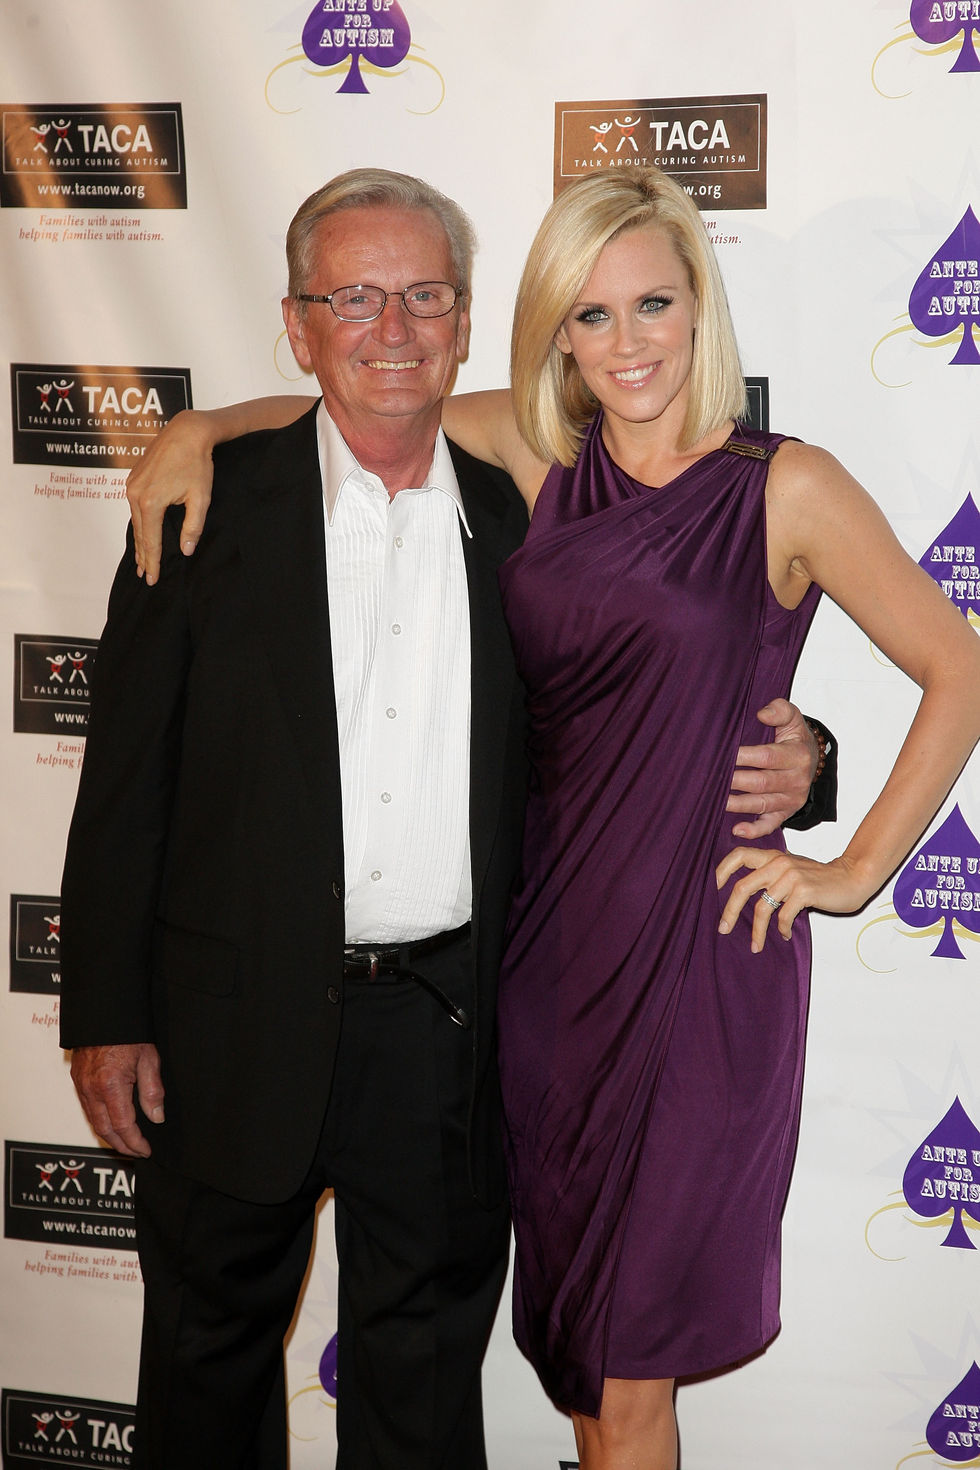 jenny-mccarthy-ante-up-for-autism-benefit-in-dana-point-01